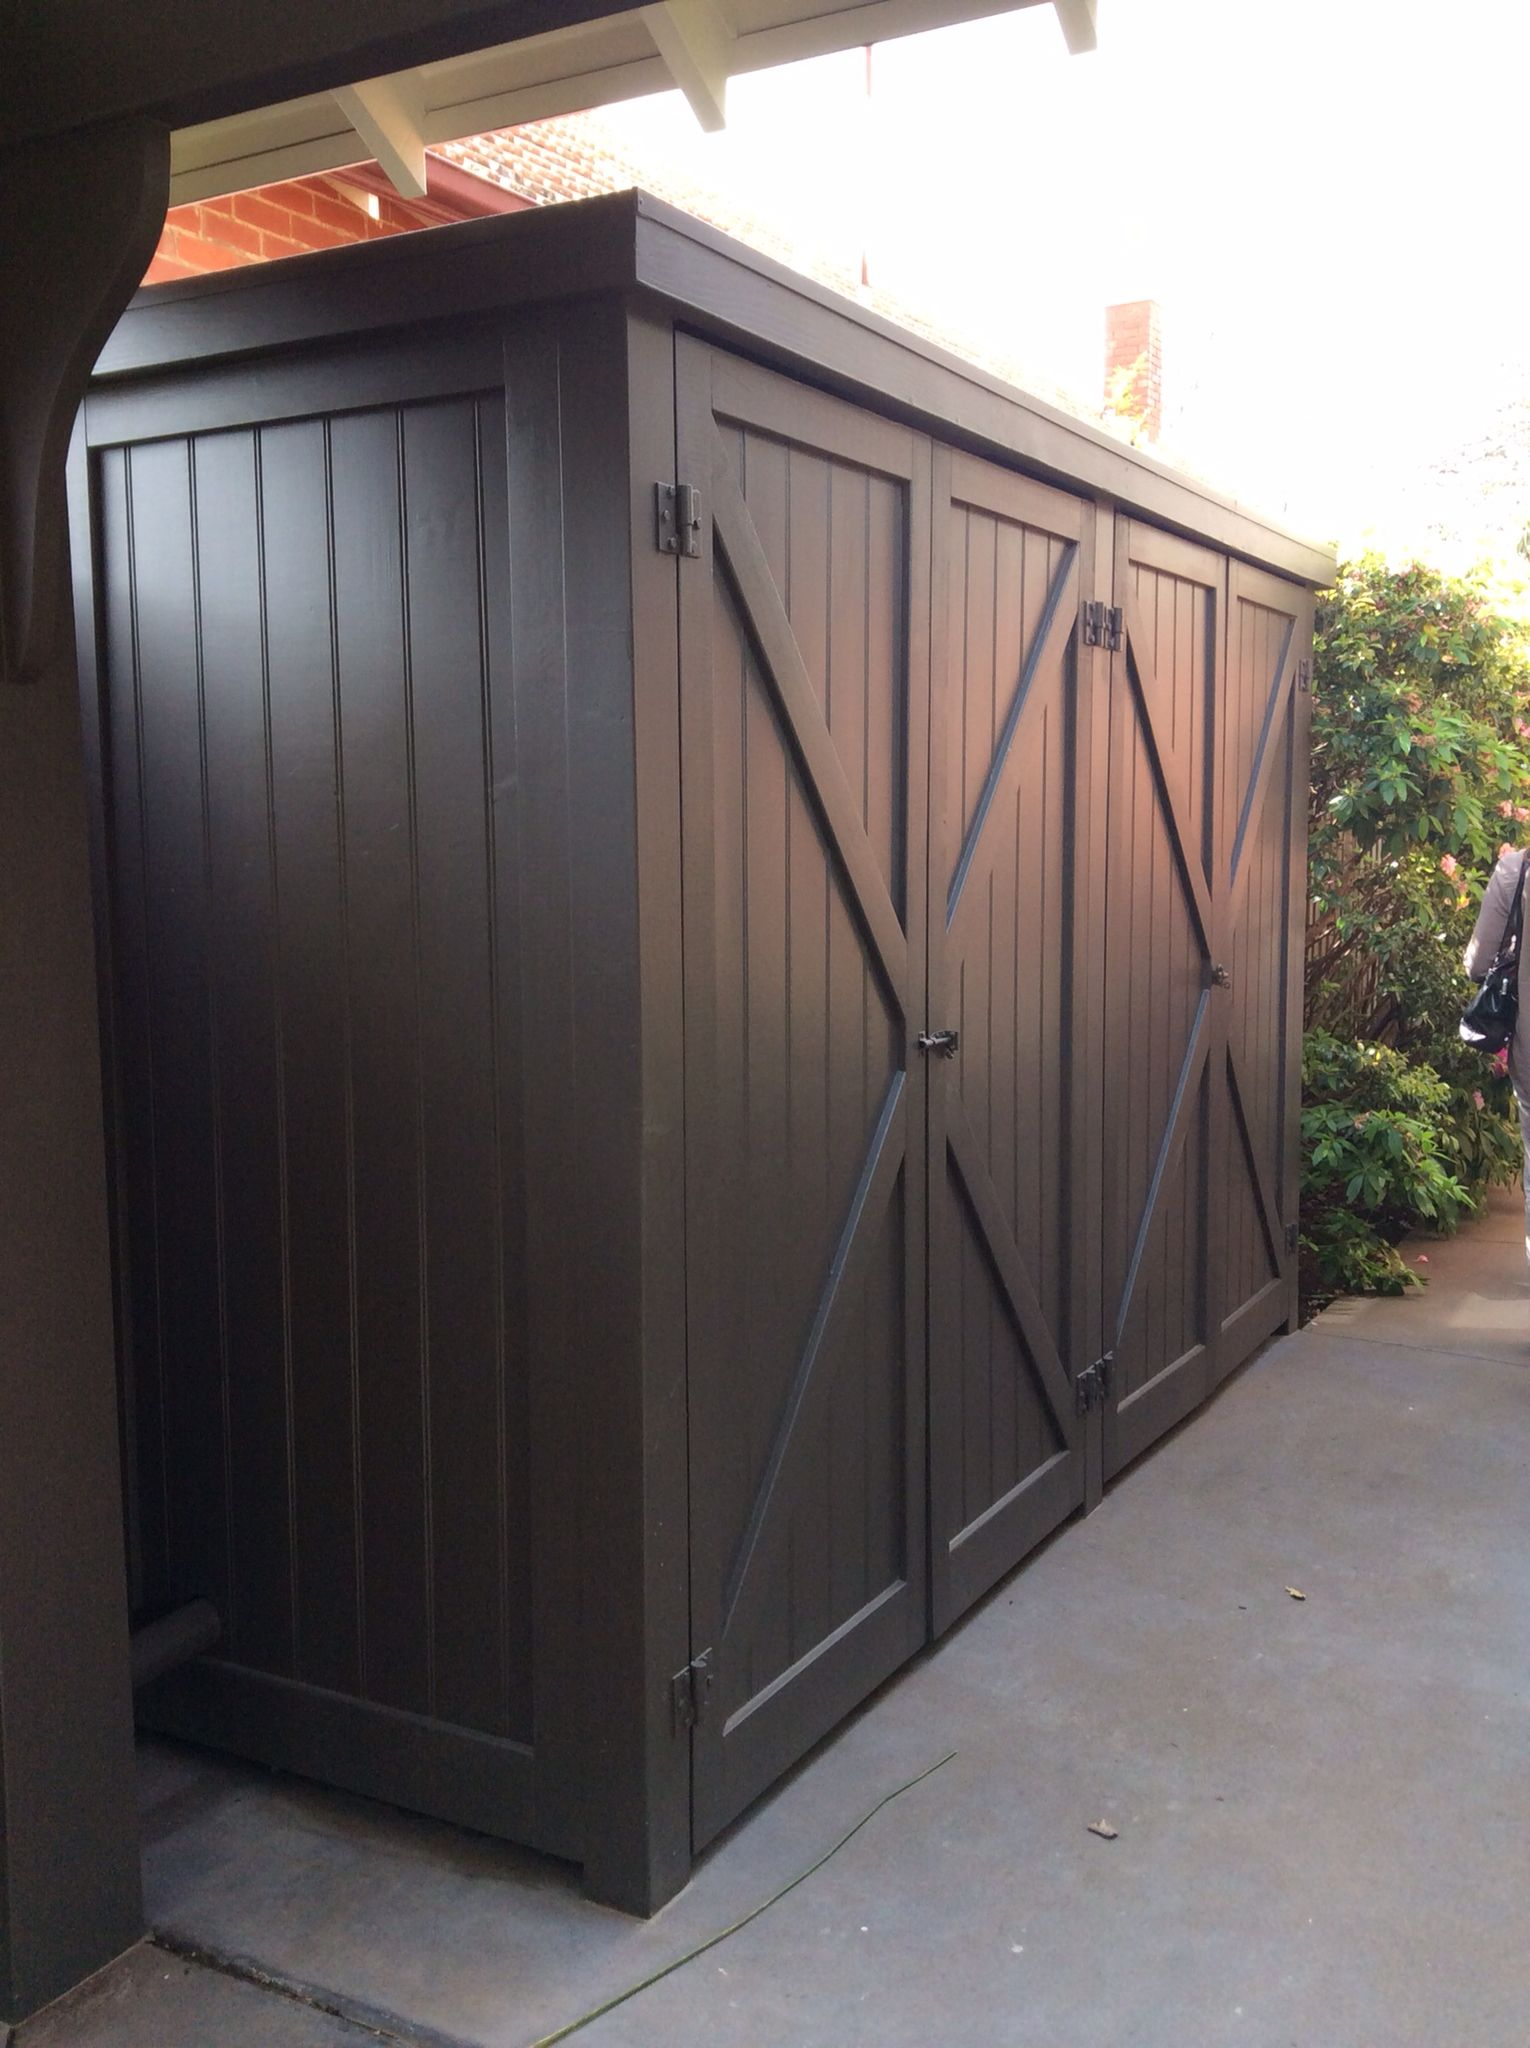 metal shed garden outsunny patio gray white outdoor x storage